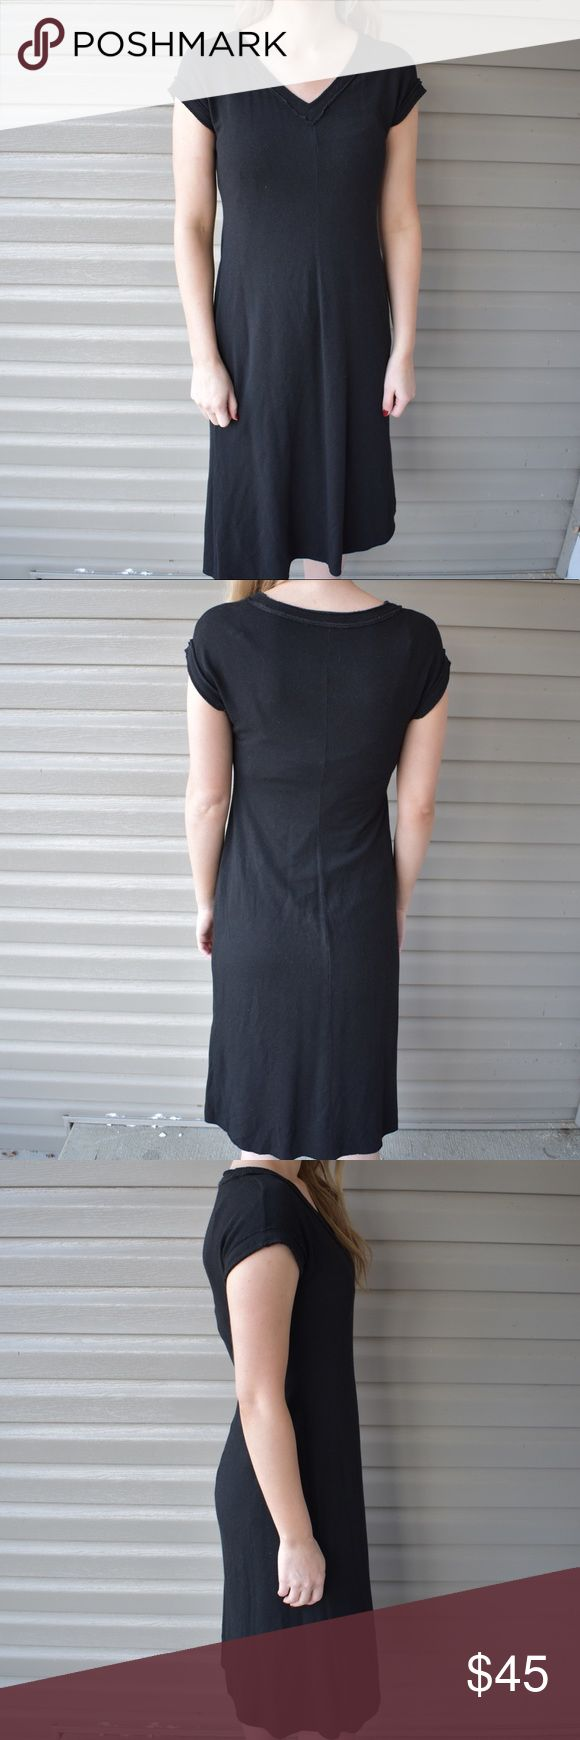 I just added this listing on Poshmark: Lafayette 148 New York Petite Black Midi Dress. #shopmycloset #poshmark #fashion #shopping #style #forsale #Lafayette 148 New York #Dresses & Skirts